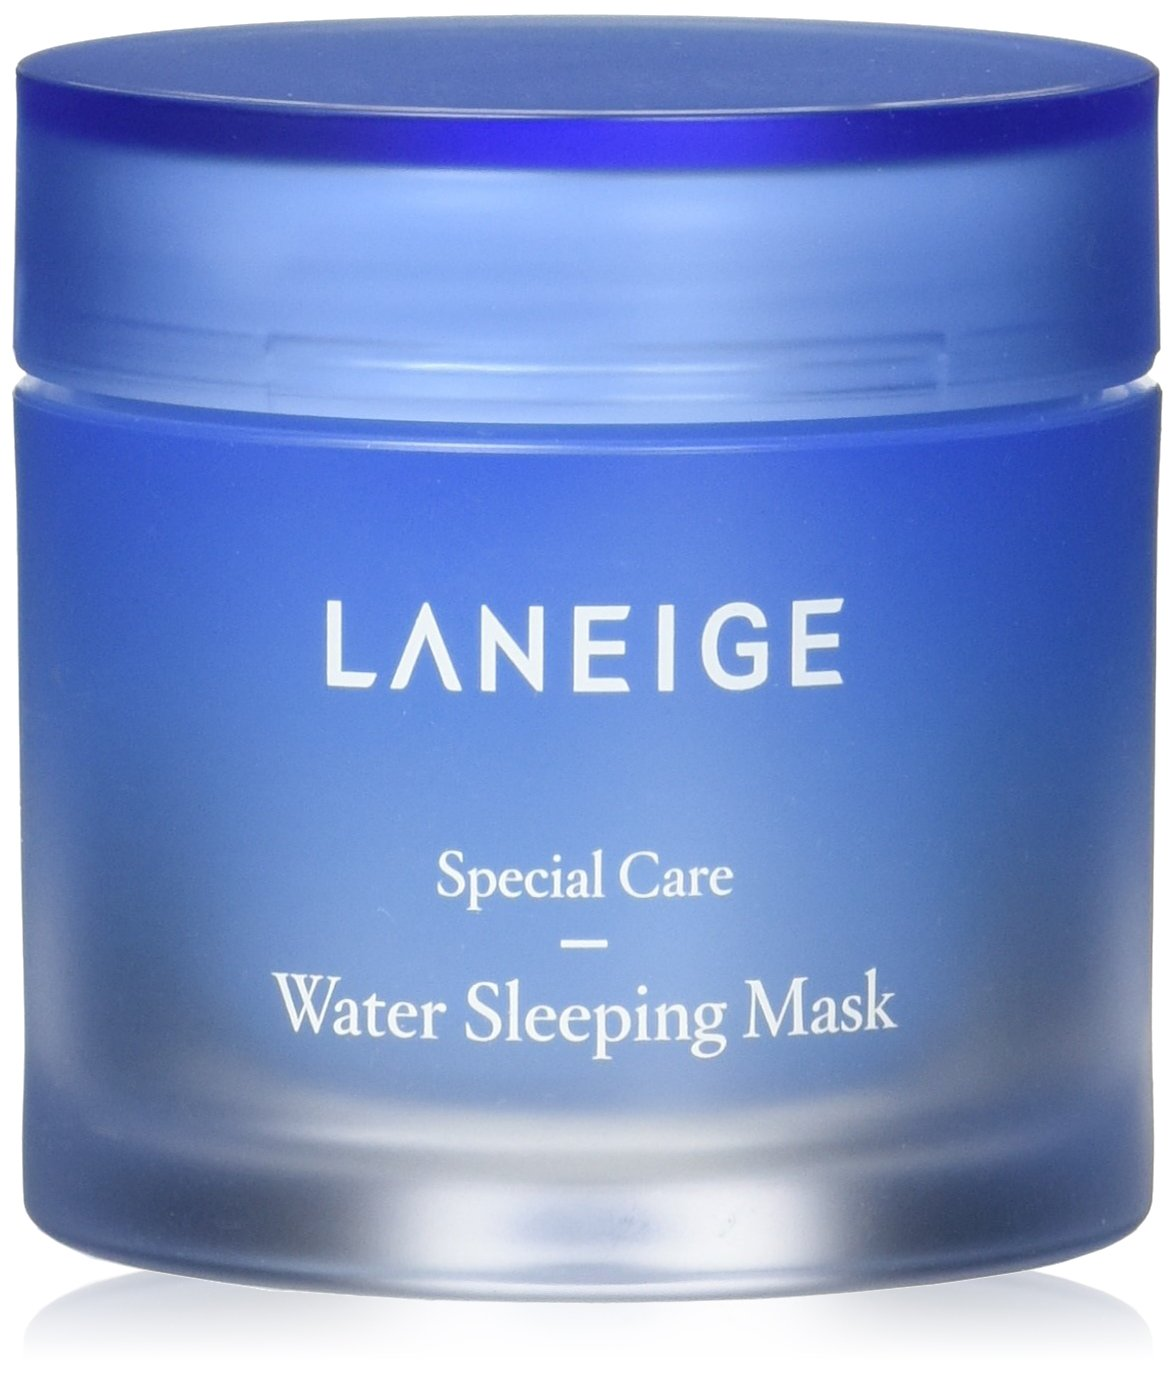 [Laneige] 2015 Renewal - Water Sleeping Mask by Laneige